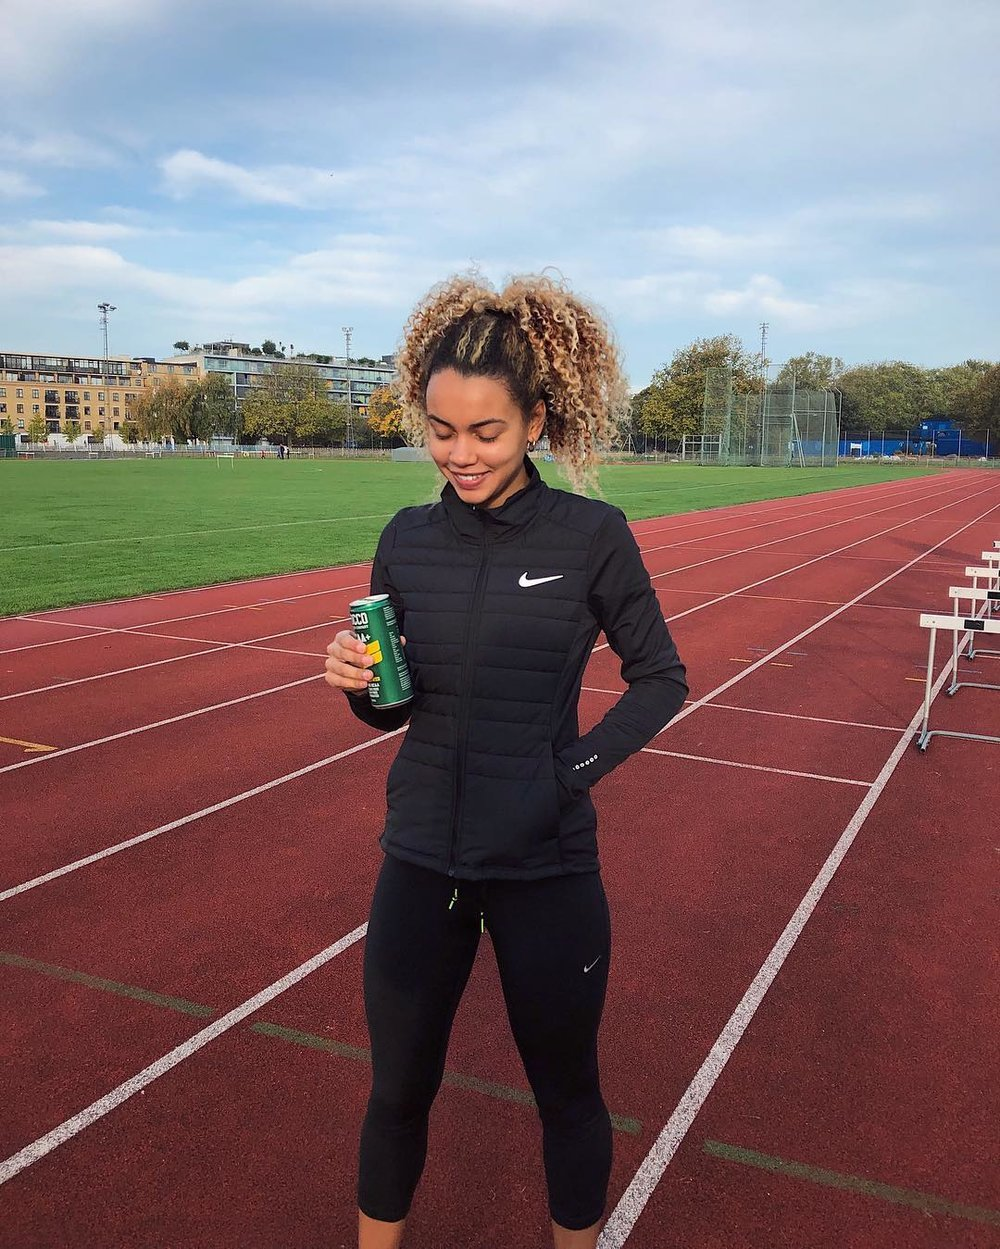 Ocean Lewis stood on a track in full Nike gear, drinking an energy drink and similing, looking at her feet